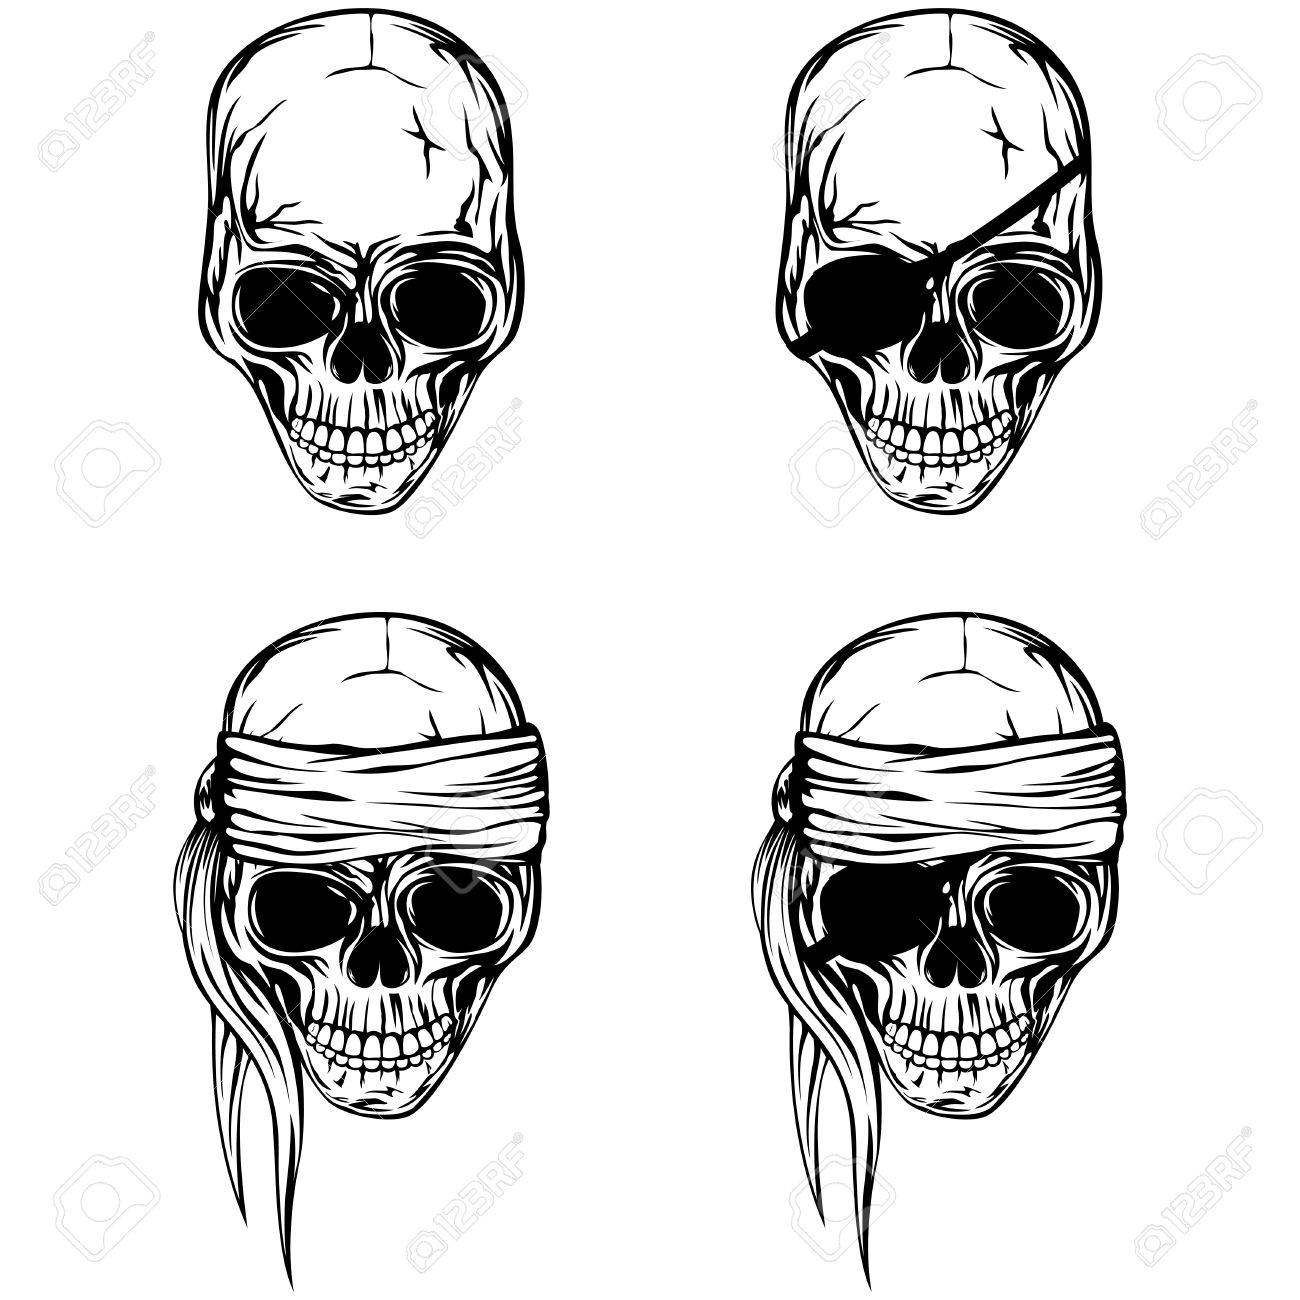 vector illustration pirate skull set skull with a bandage on